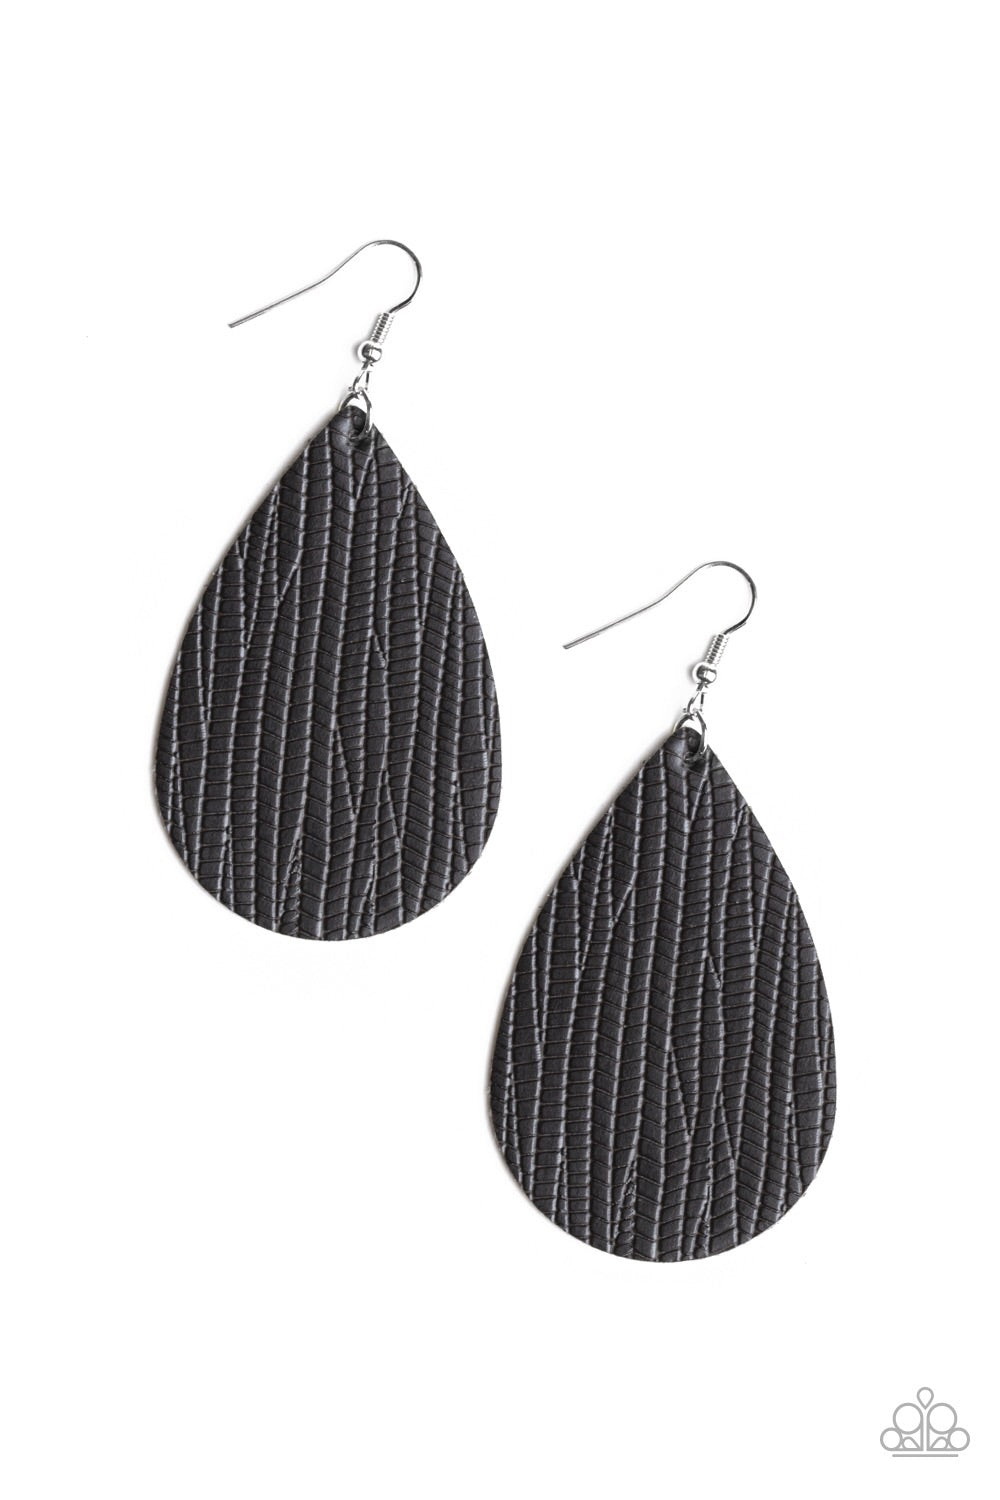 Paparazzi Natural Resource Animal Print Leather Earrings - Black